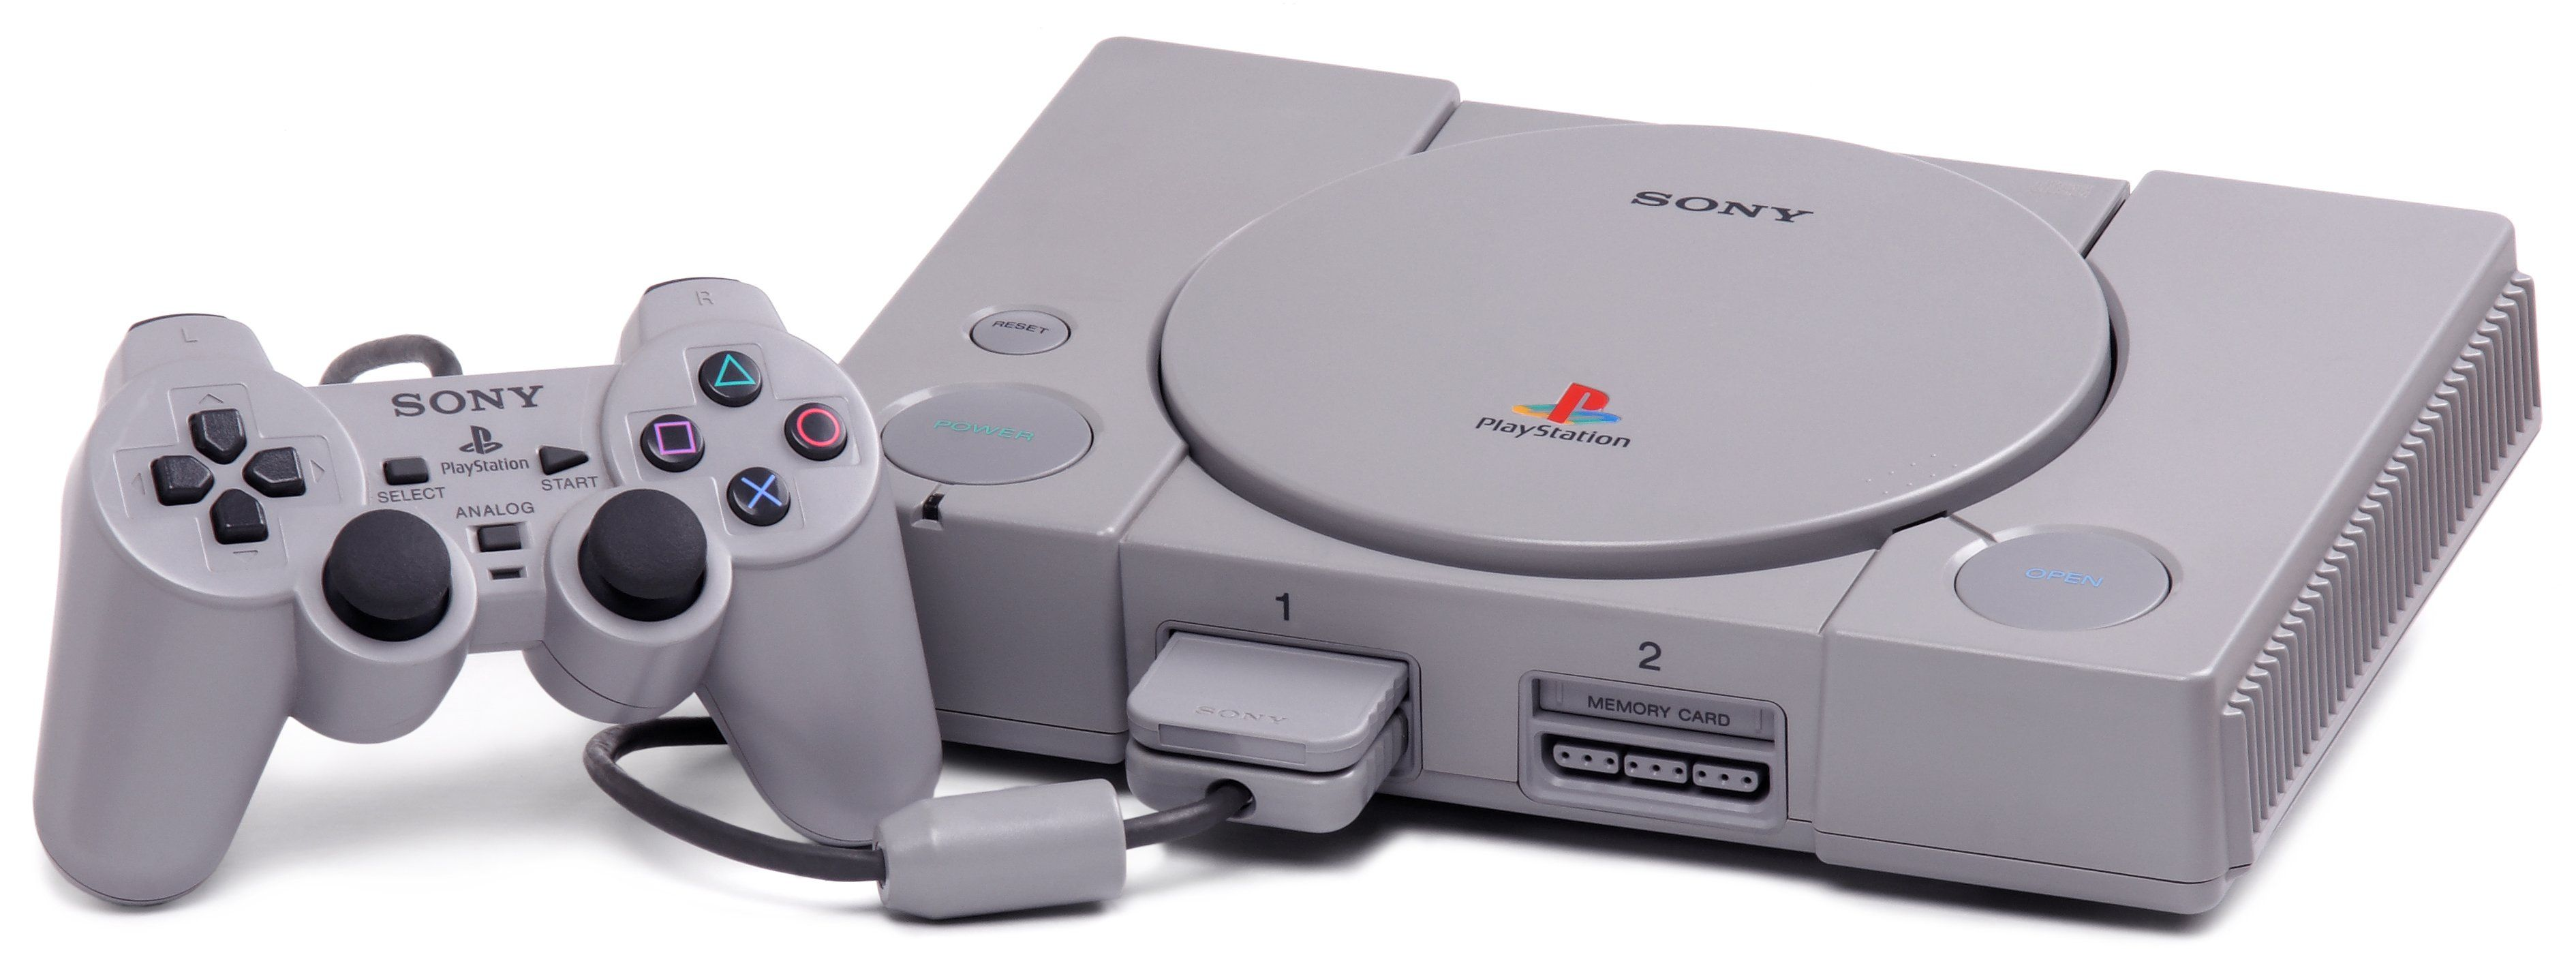 Our First Playstation Game - Daily Two Cents